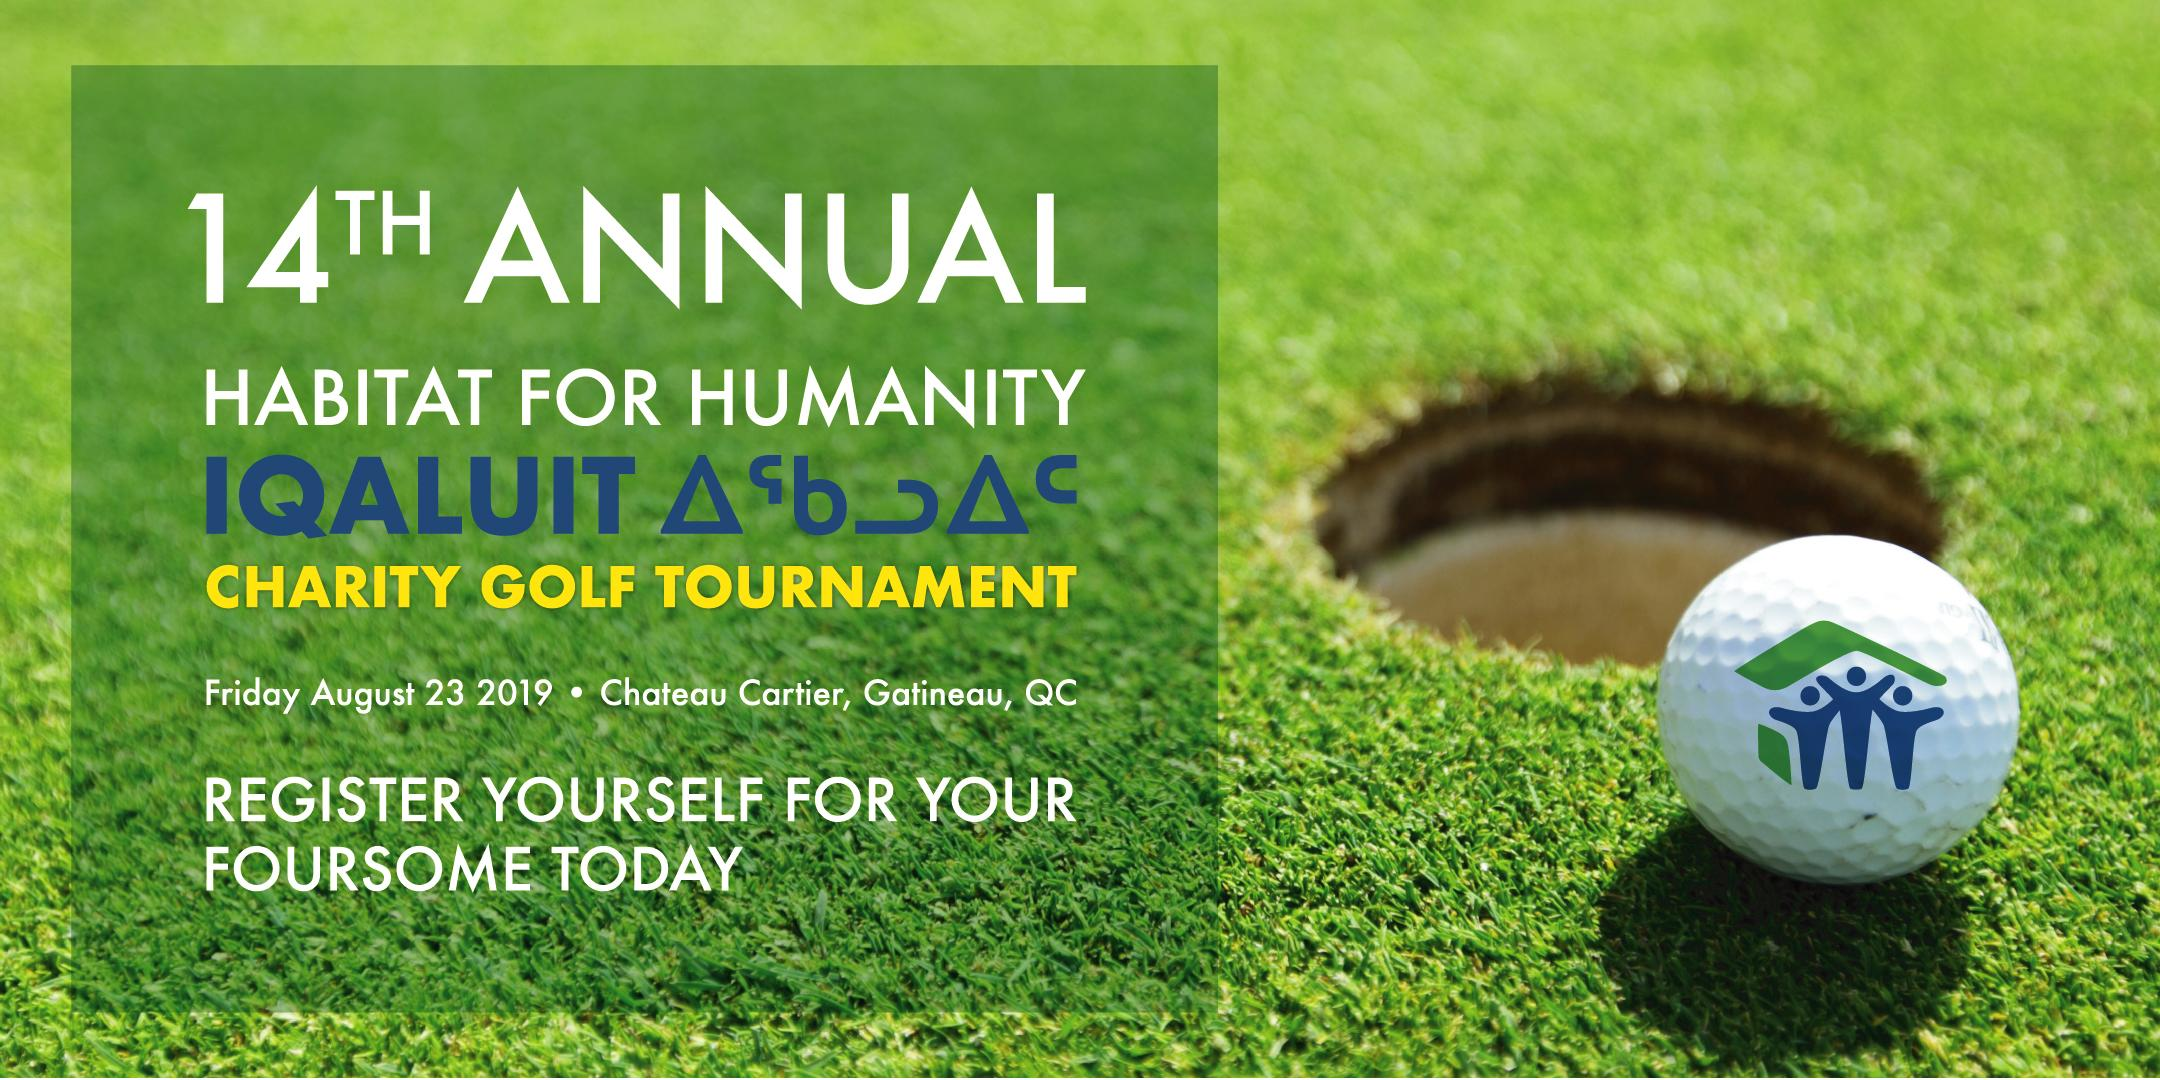 Habitat for Humanity Iqaluit 14th Annual Golf Tournament